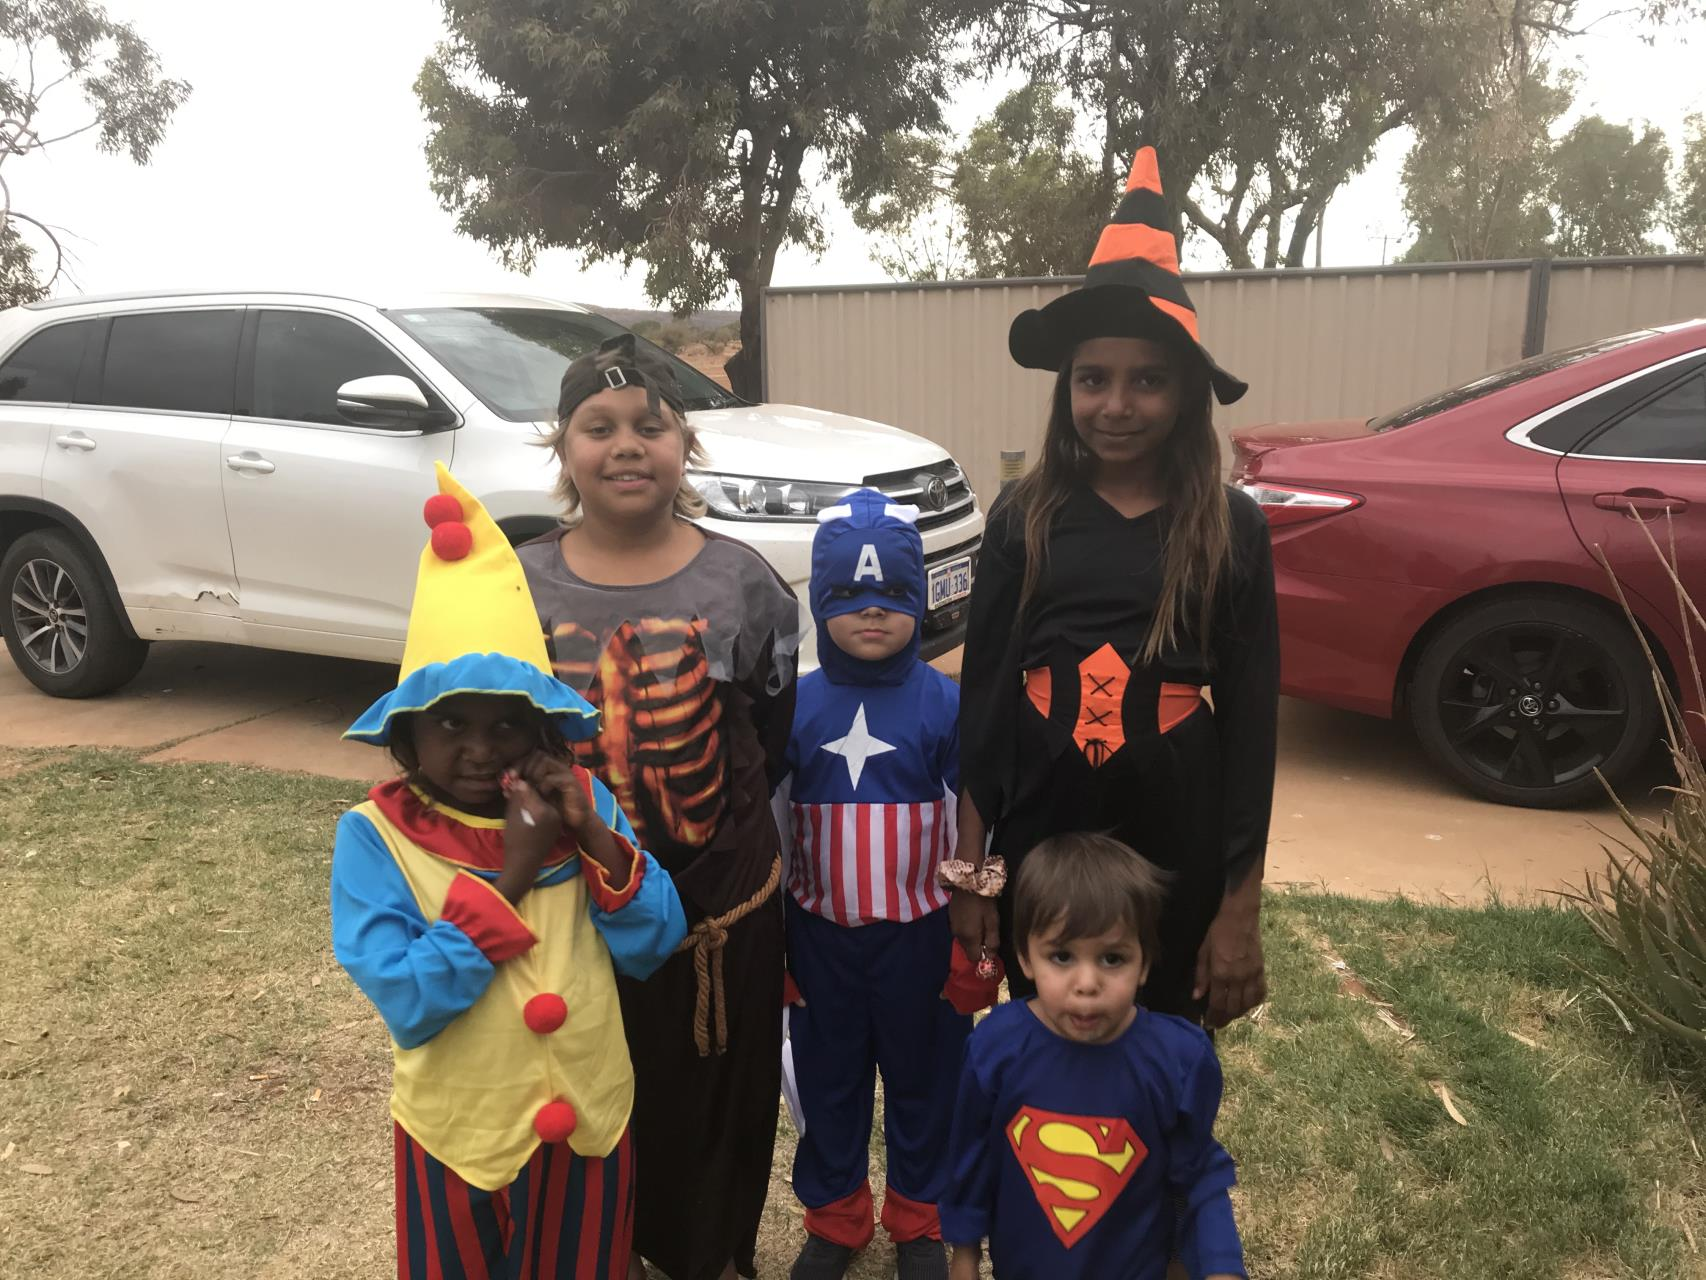 GRAMS awards scariest costume at Yalgoo Halloween Parade